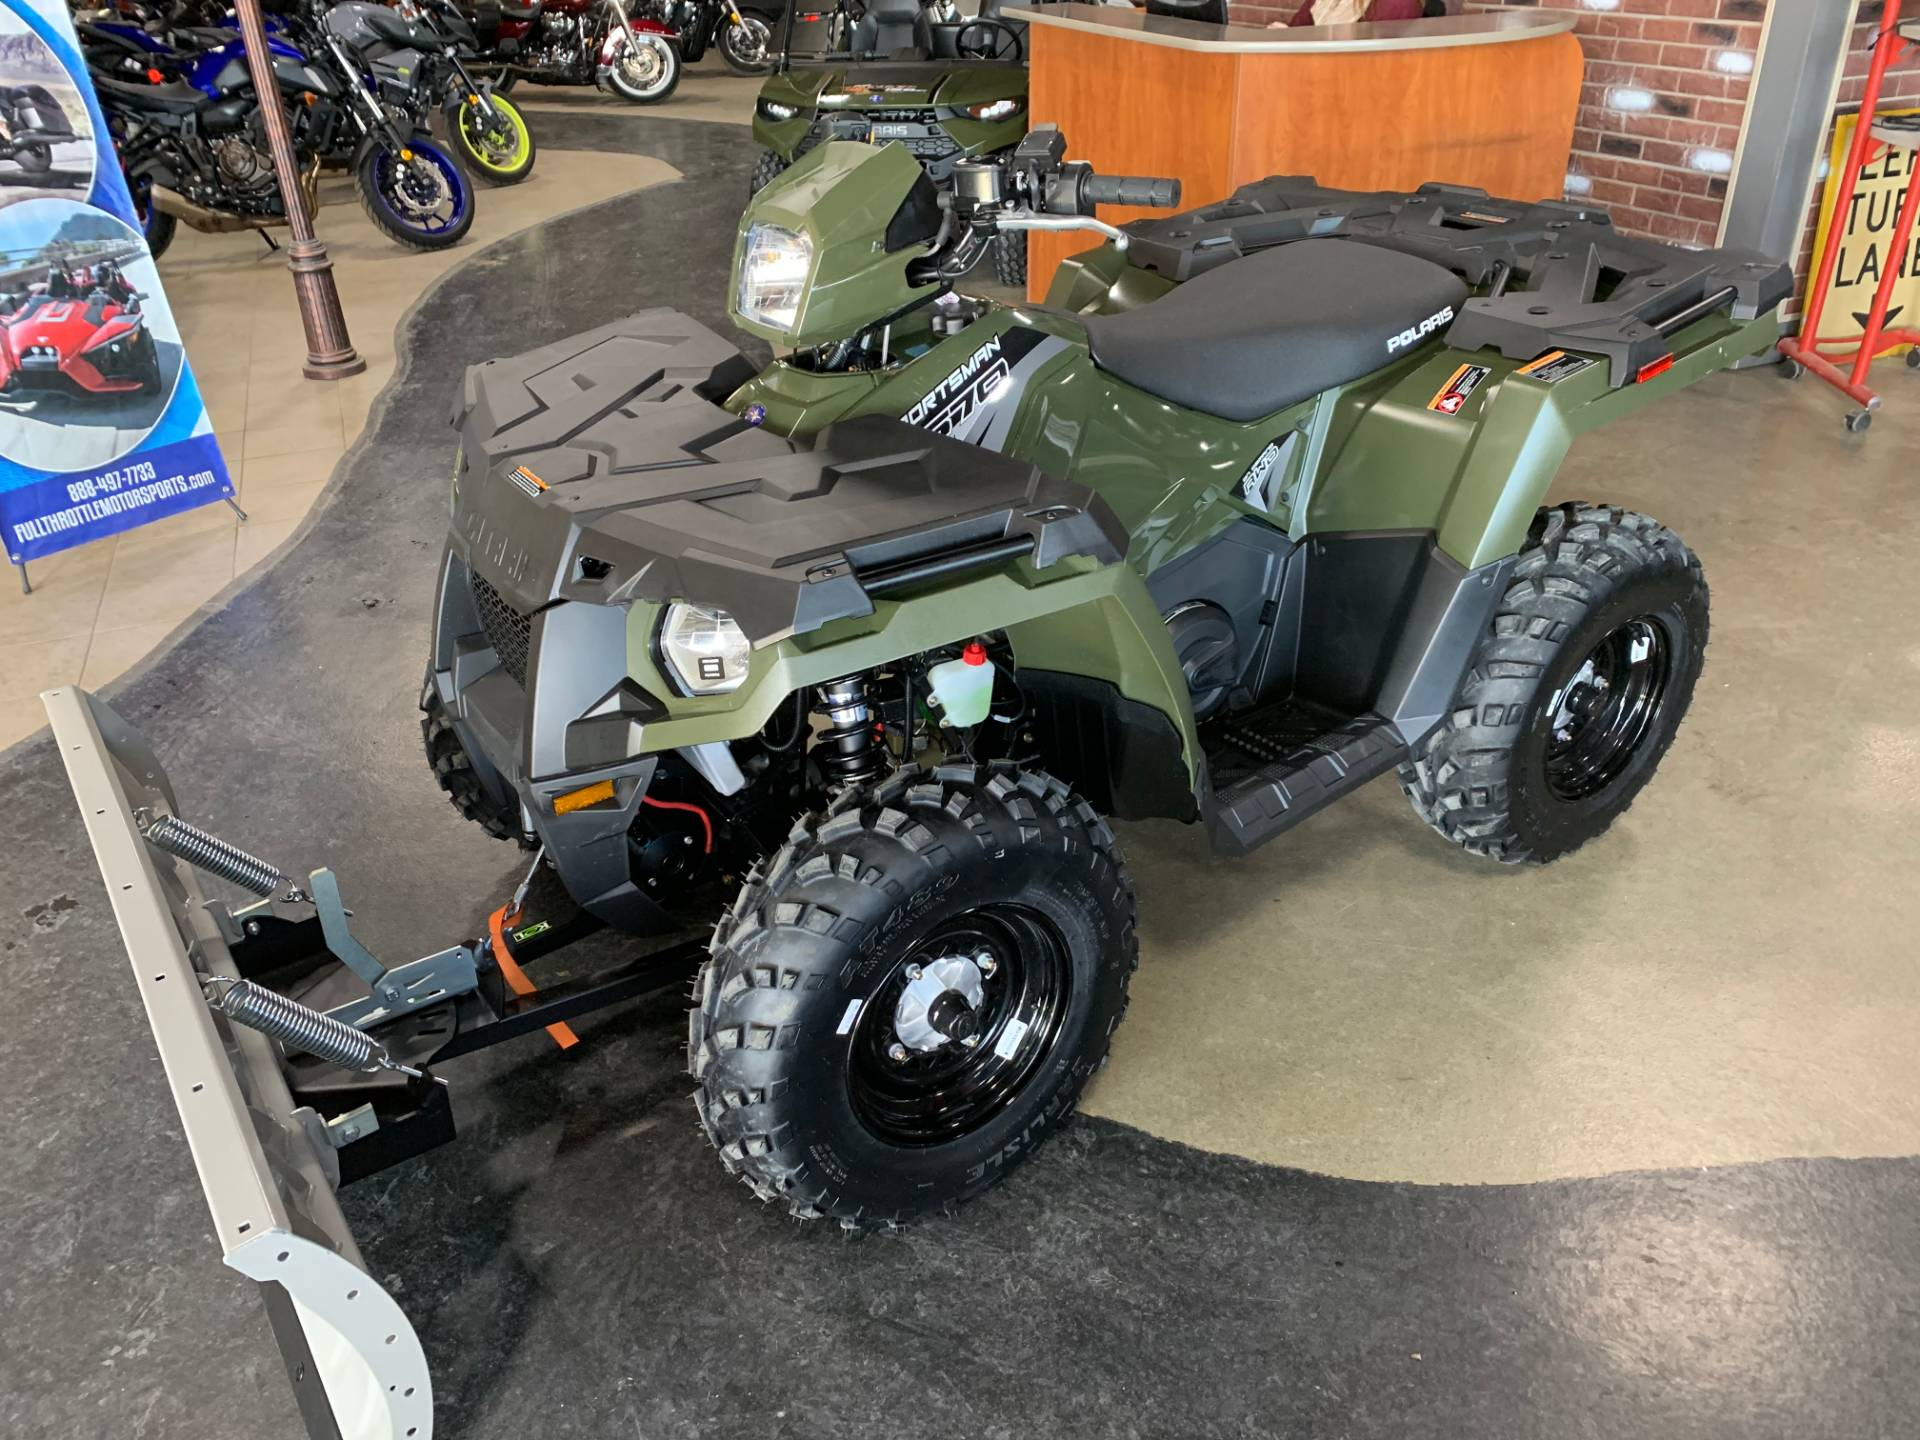 2018 Polaris Sportsman 570 in Dimondale, Michigan - Photo 6